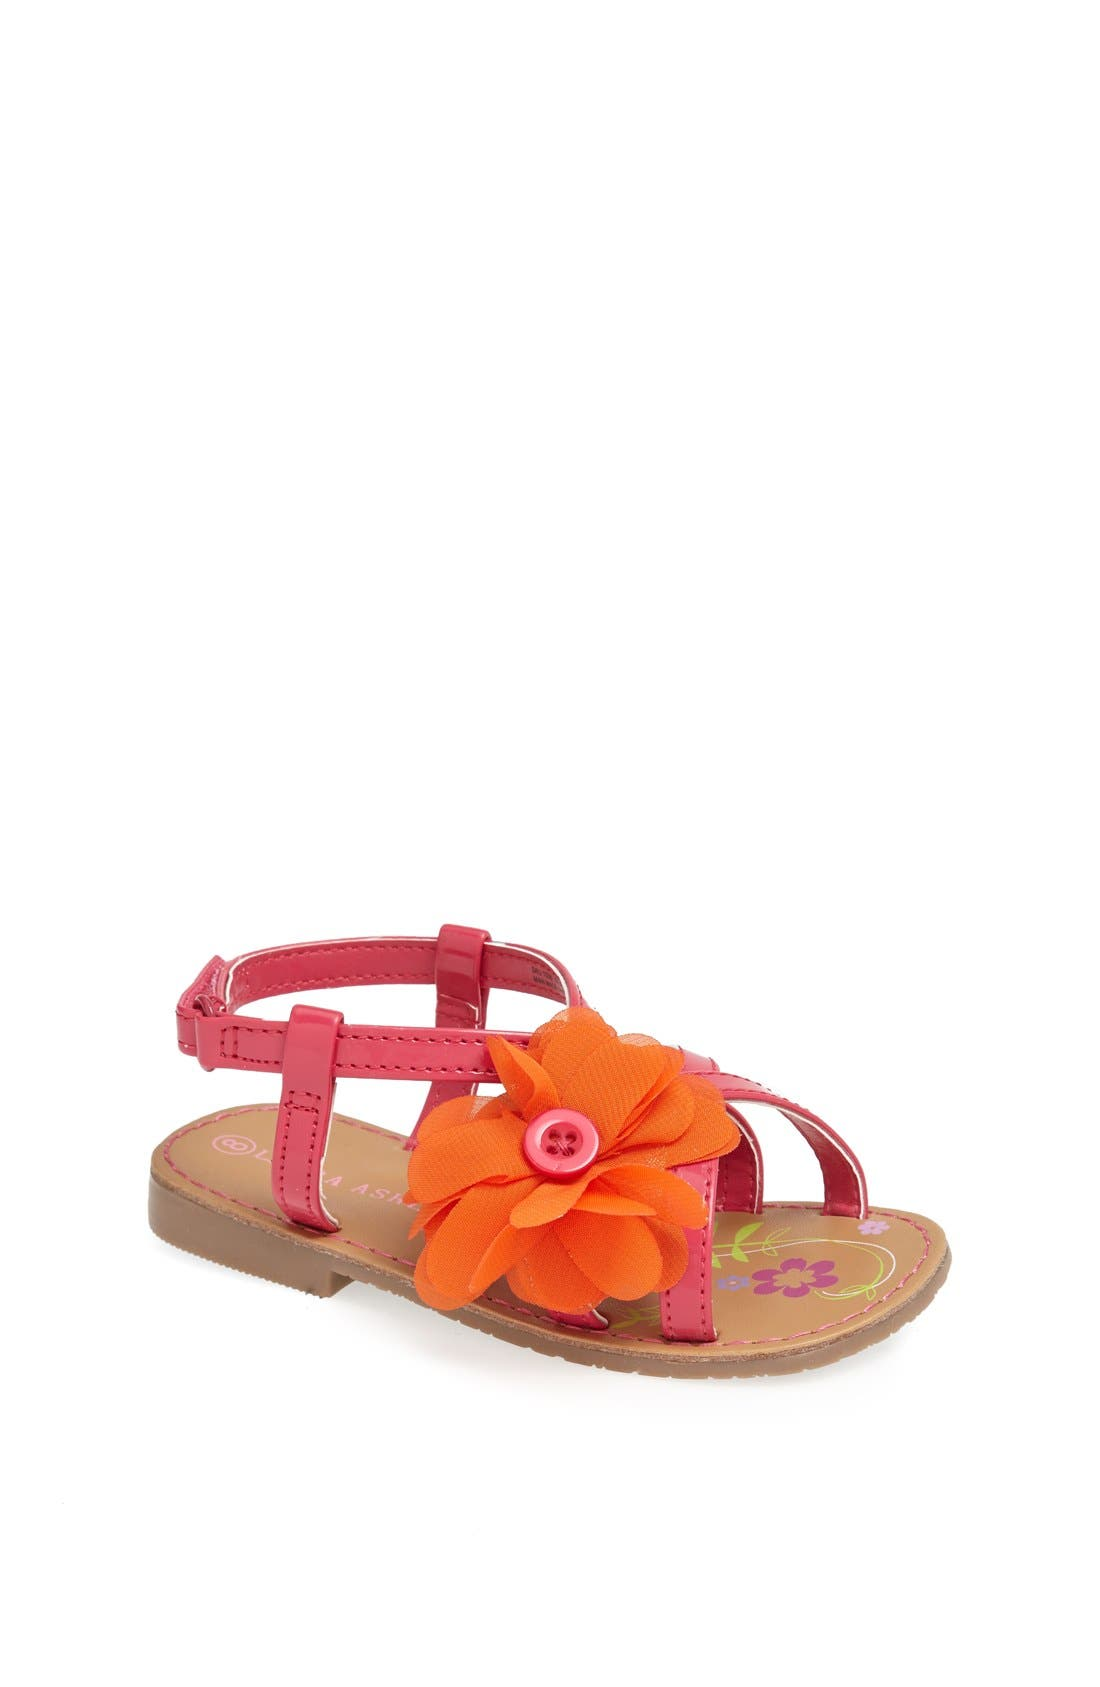 Alternate Image 1 Selected - Laura Ashley Chiffon Flower Sandal (Walker & Toddler)